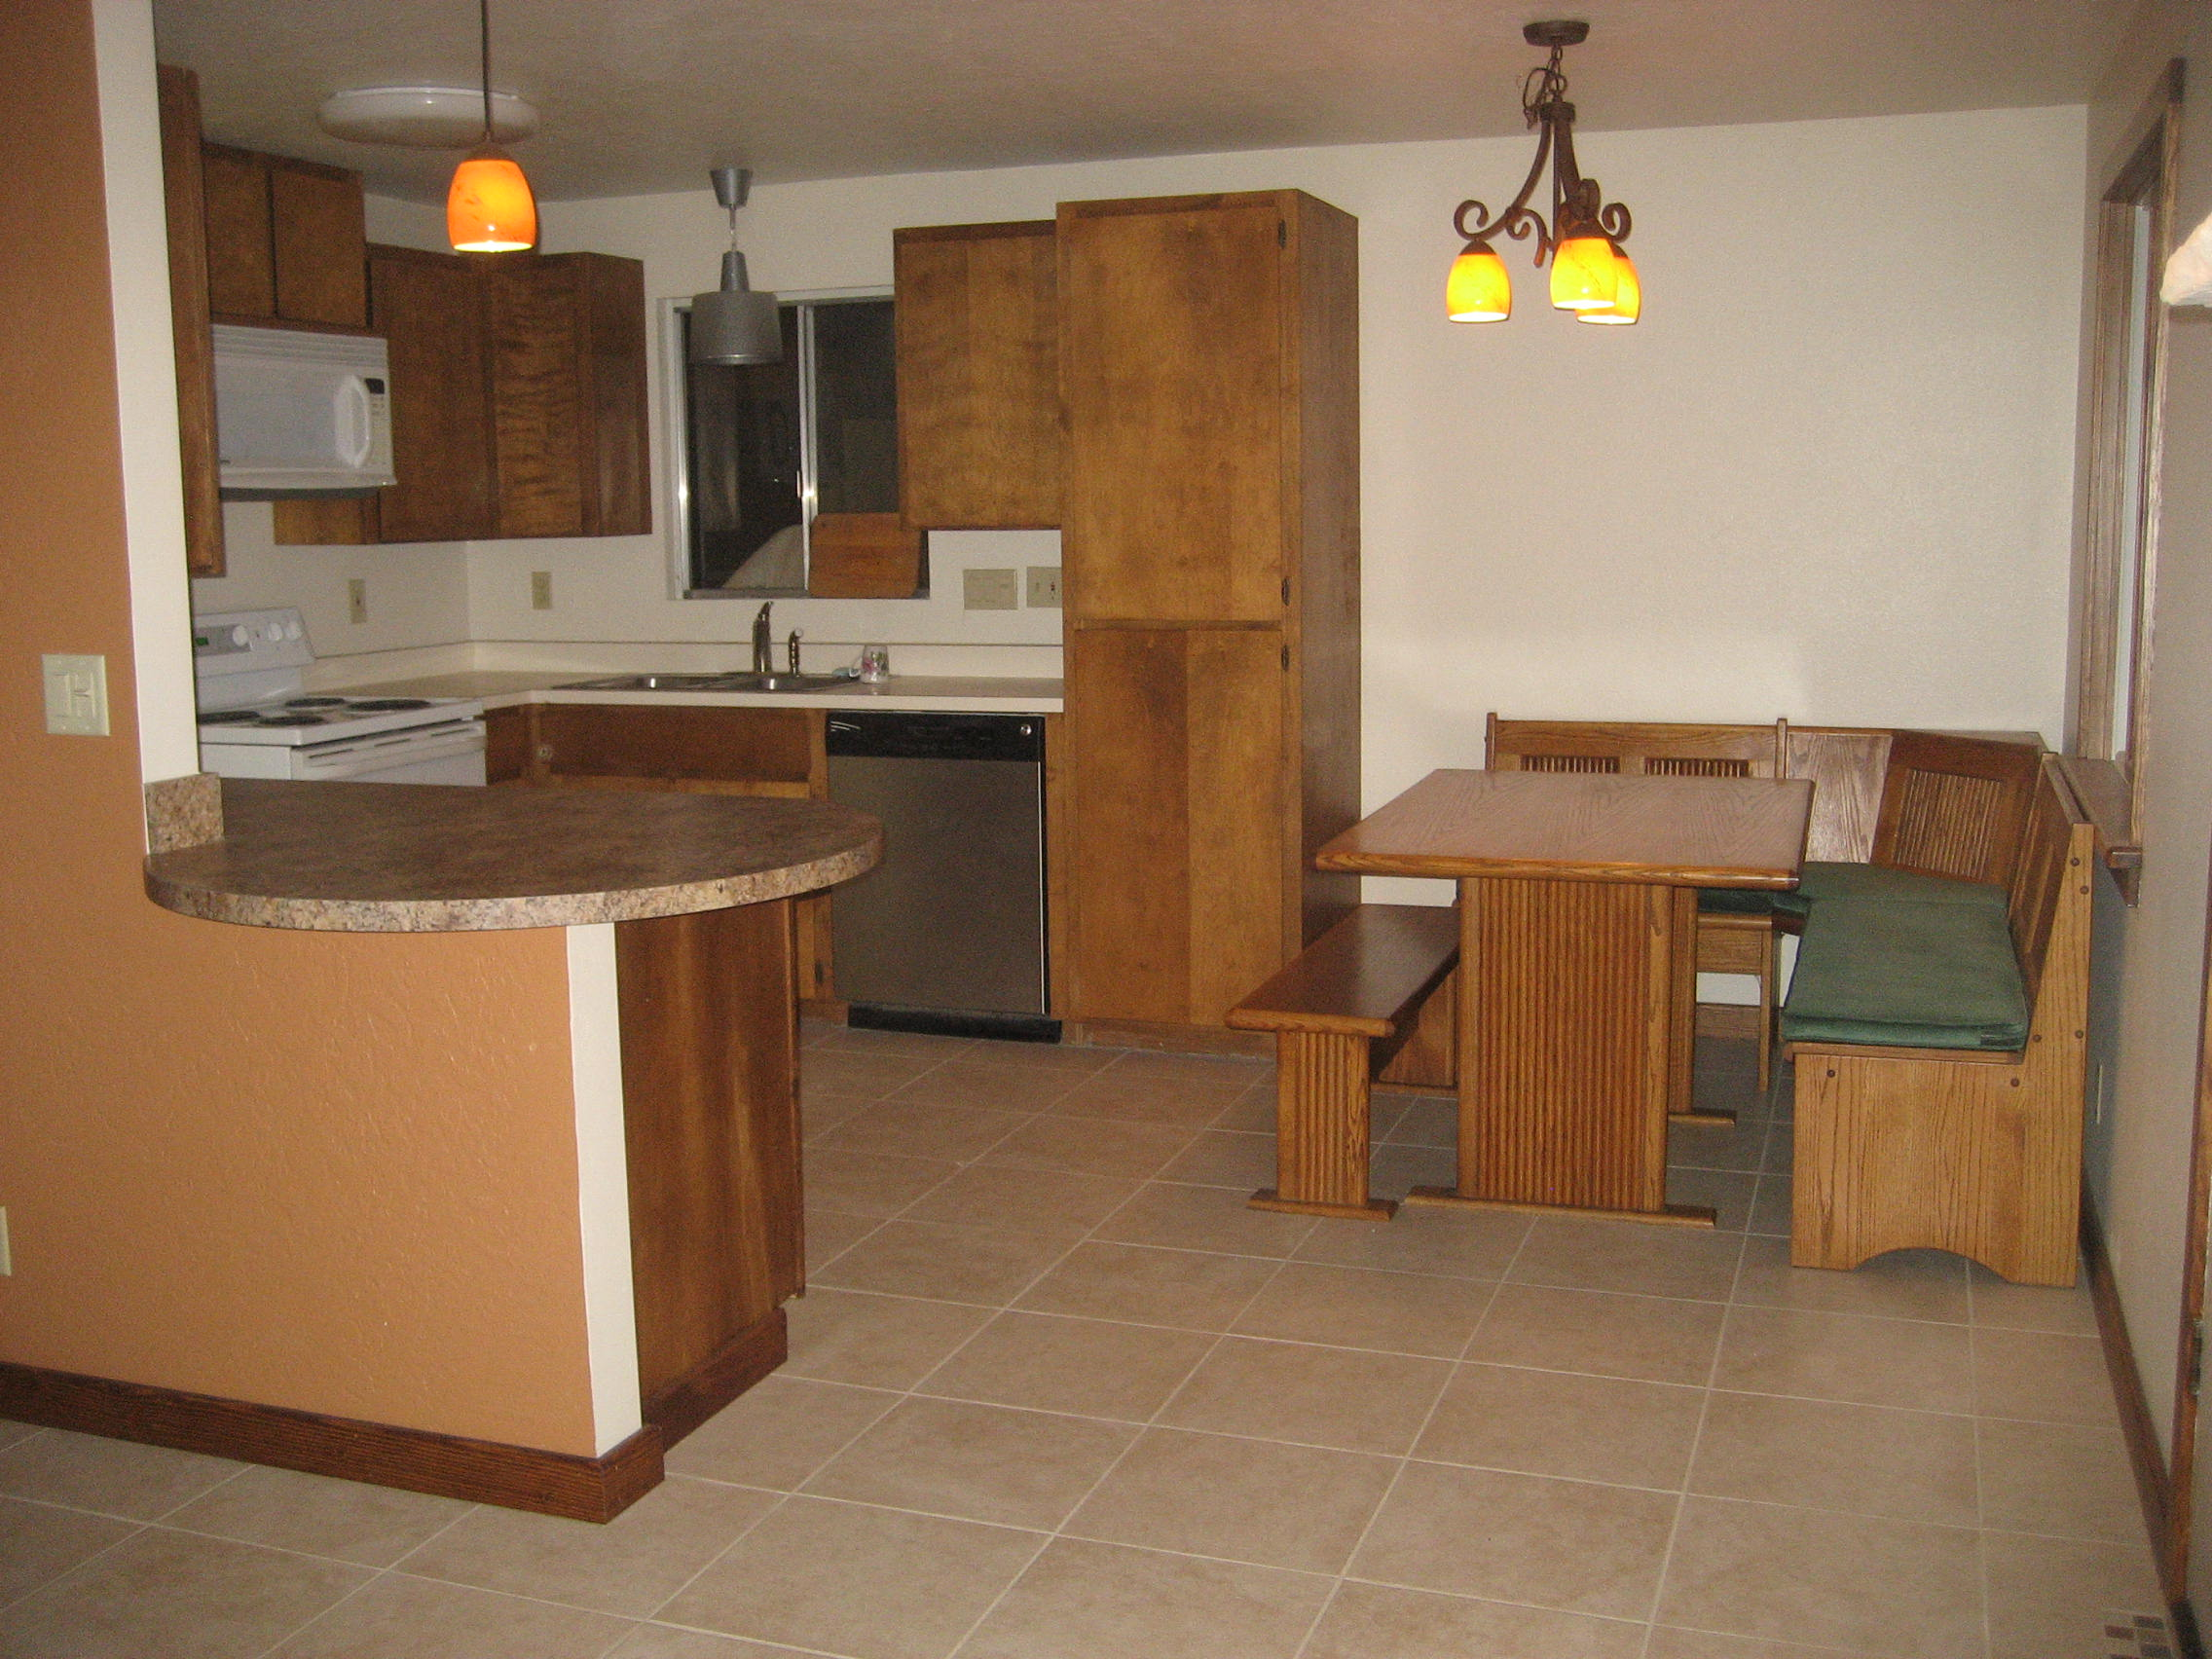 Prescott AZ Rentals close to Downtown, Prescott College - 240 ...